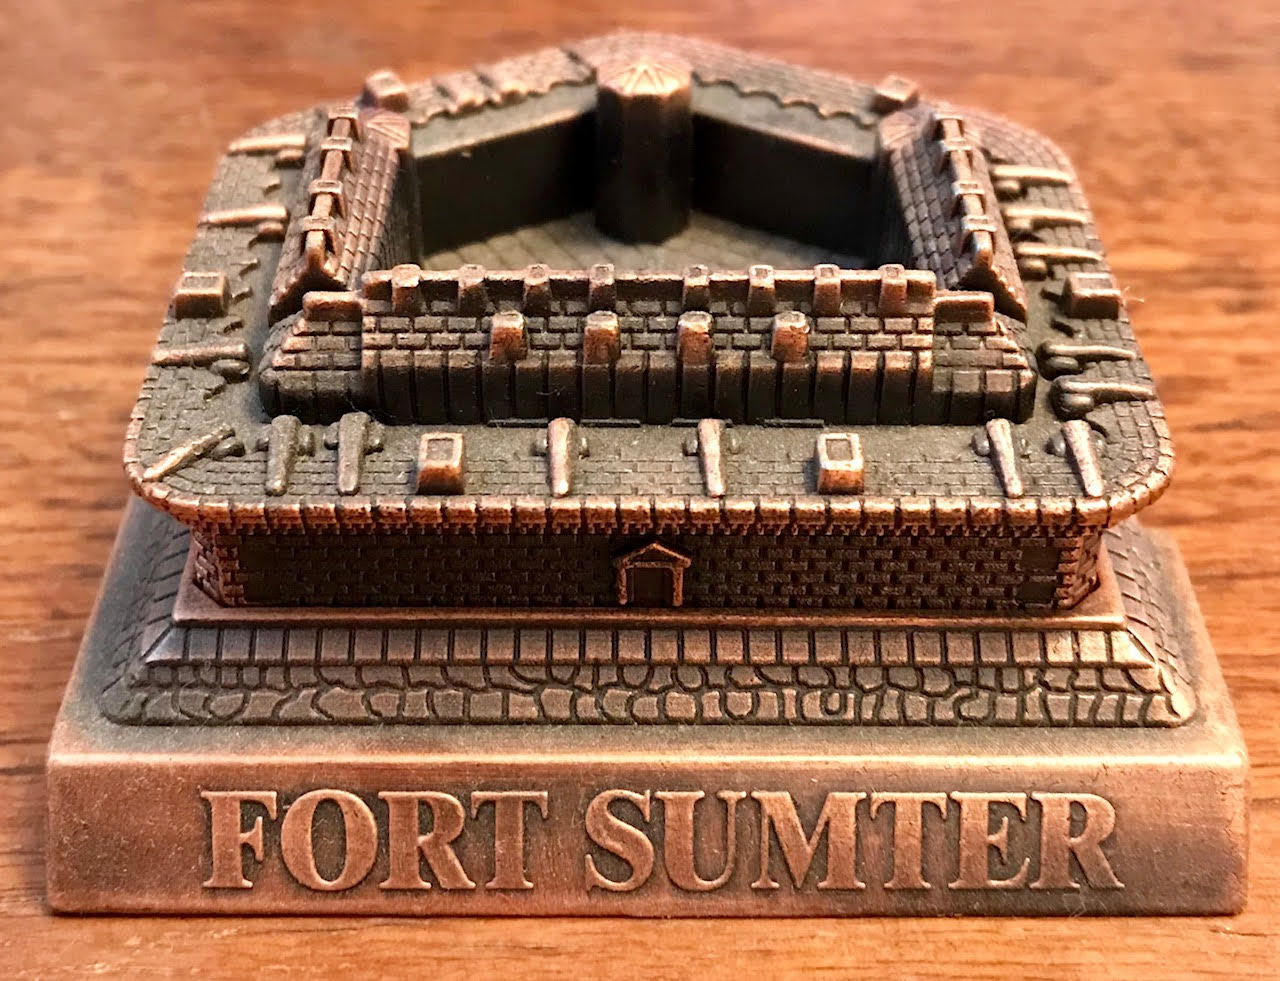 the causes and impact of the fall of fort sumter in 1861 Pittsburgh in 1861 had strong economic links to the mississippi valley, and many of its residents had roots below the mason-dixon line a significant minority were democrats and sympathetic to the southern cause the confederate attack on fort sumter, which was commanded by major robert anderson,.